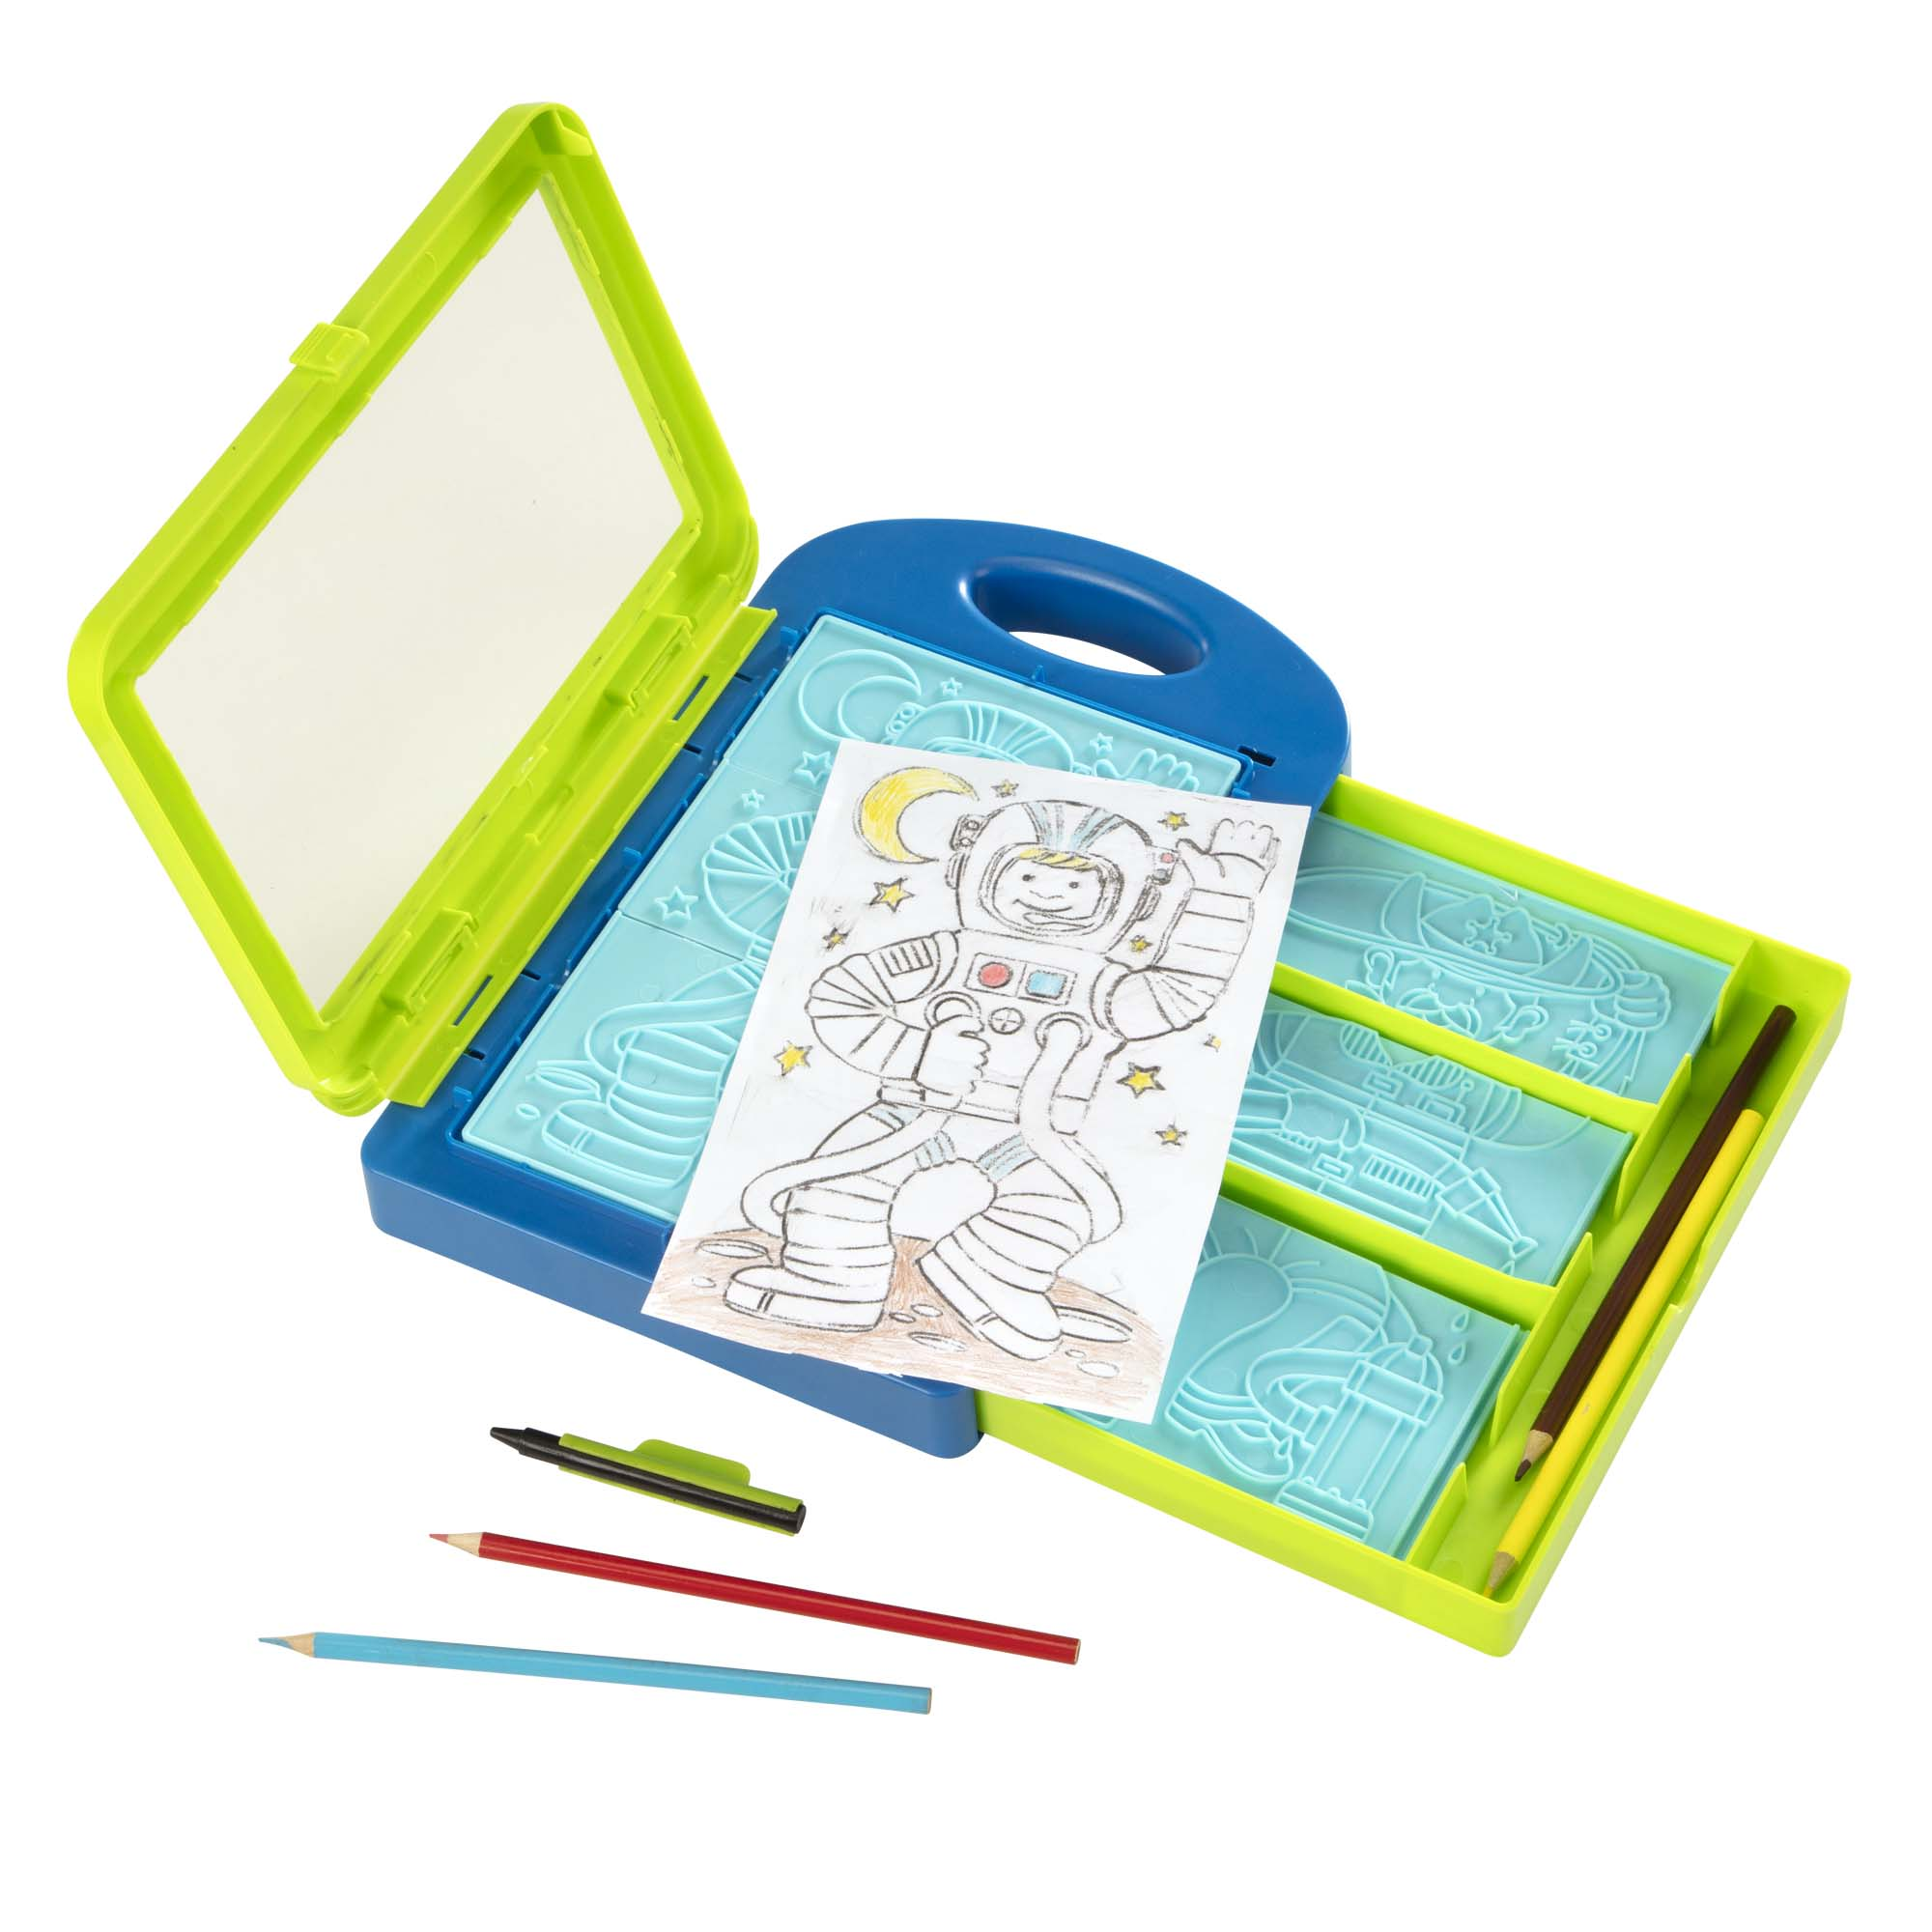 This plate rubbing set lets kids mix and match pieces to design and create hundreds of adventurous characters! Choose a top, middle, and bottom from nine double-sided plates, lay a piece of paper over the top, rub with a design crayon and. ta-da! A unique (and sometimes wacky!) illustration to color in! Encourages hand-eye coordination and creative expression.